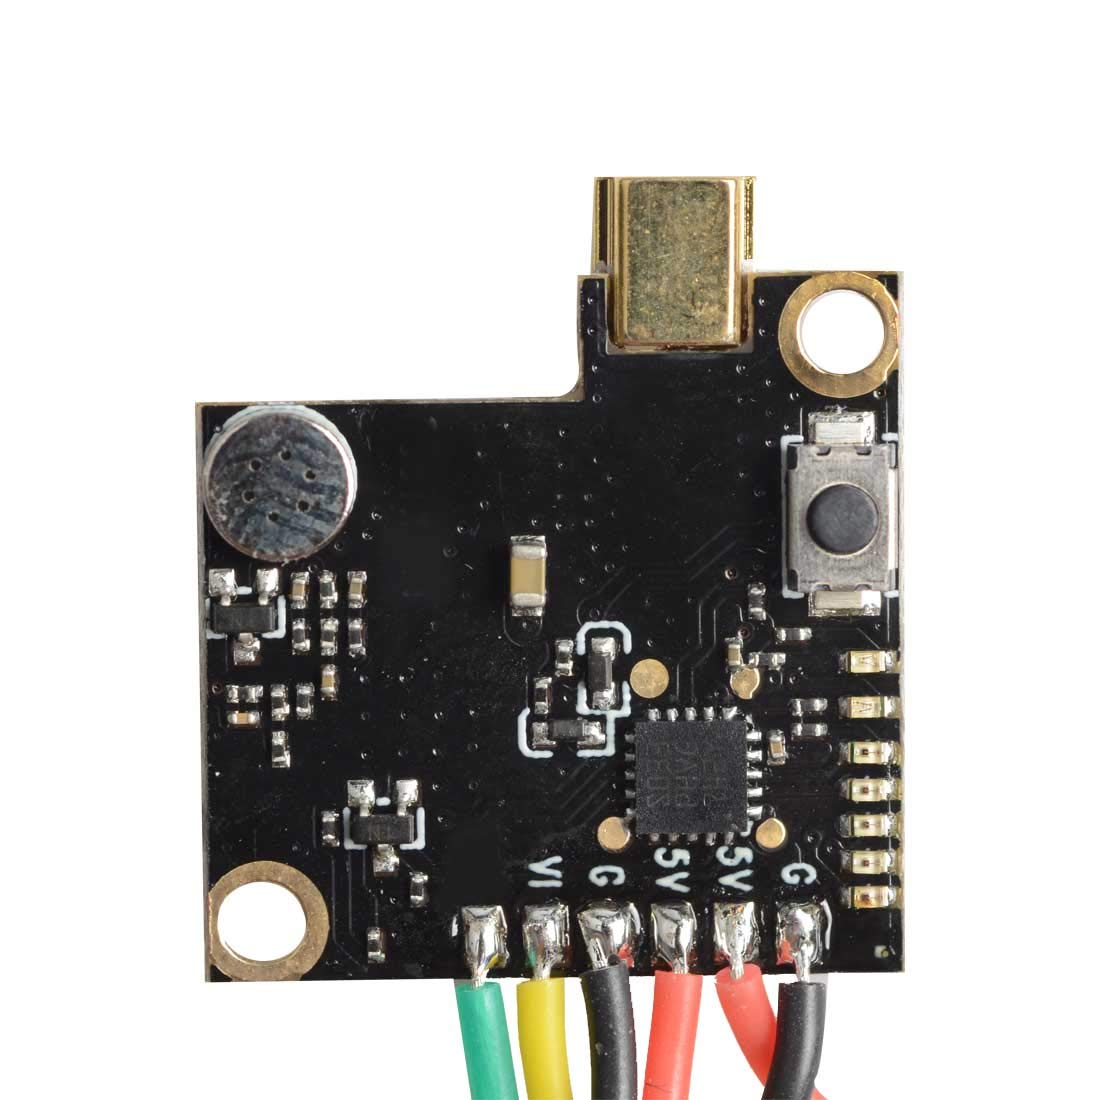 AKK Oscar's Backpack VTX 0.01mW/25mW/200mW with OSD Configuration Support Smart Audio for FPV Drone